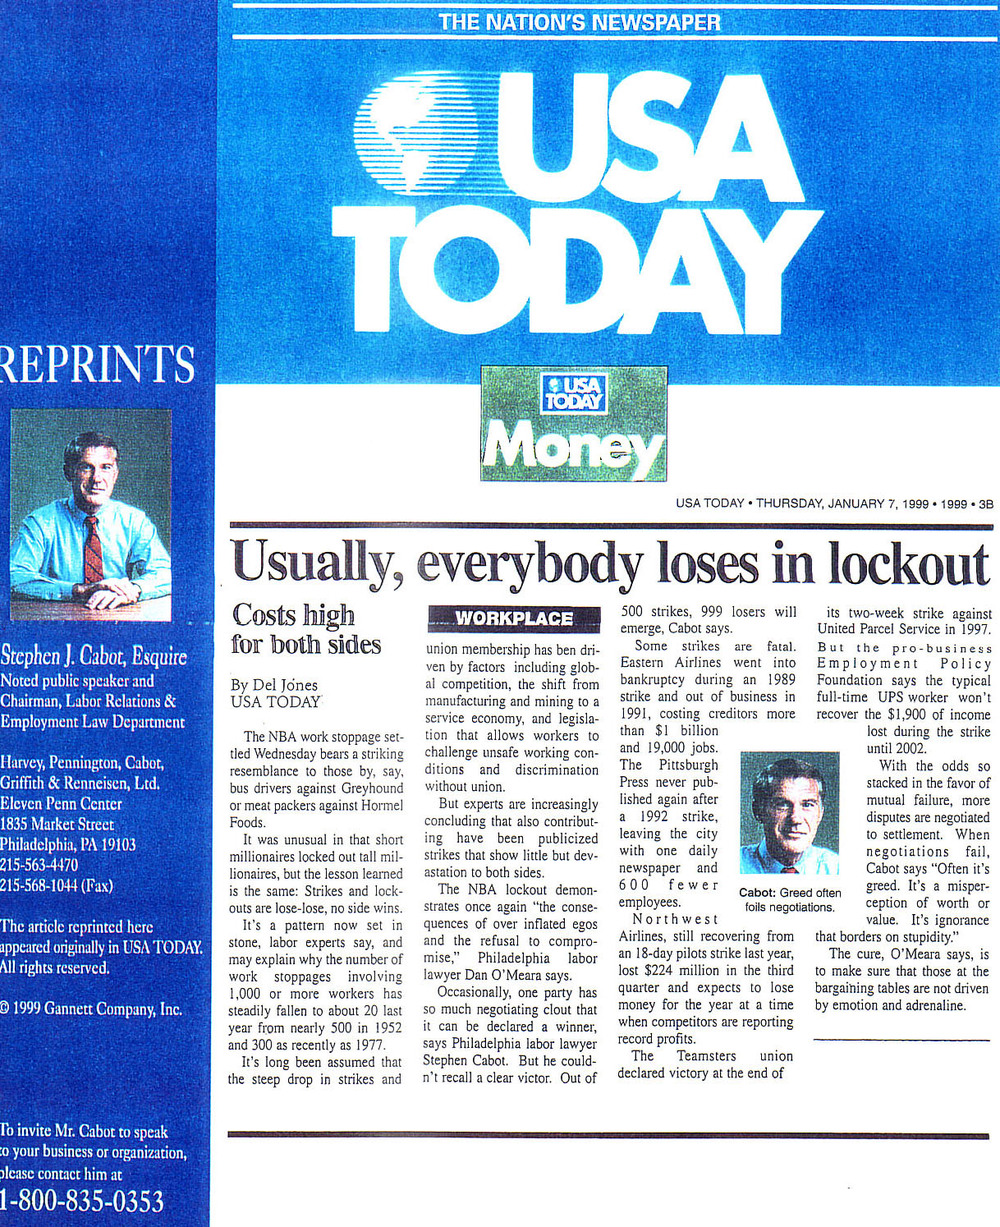 usa today-january 7, 1999-usually everybody loses in lockout  page 1.jpg